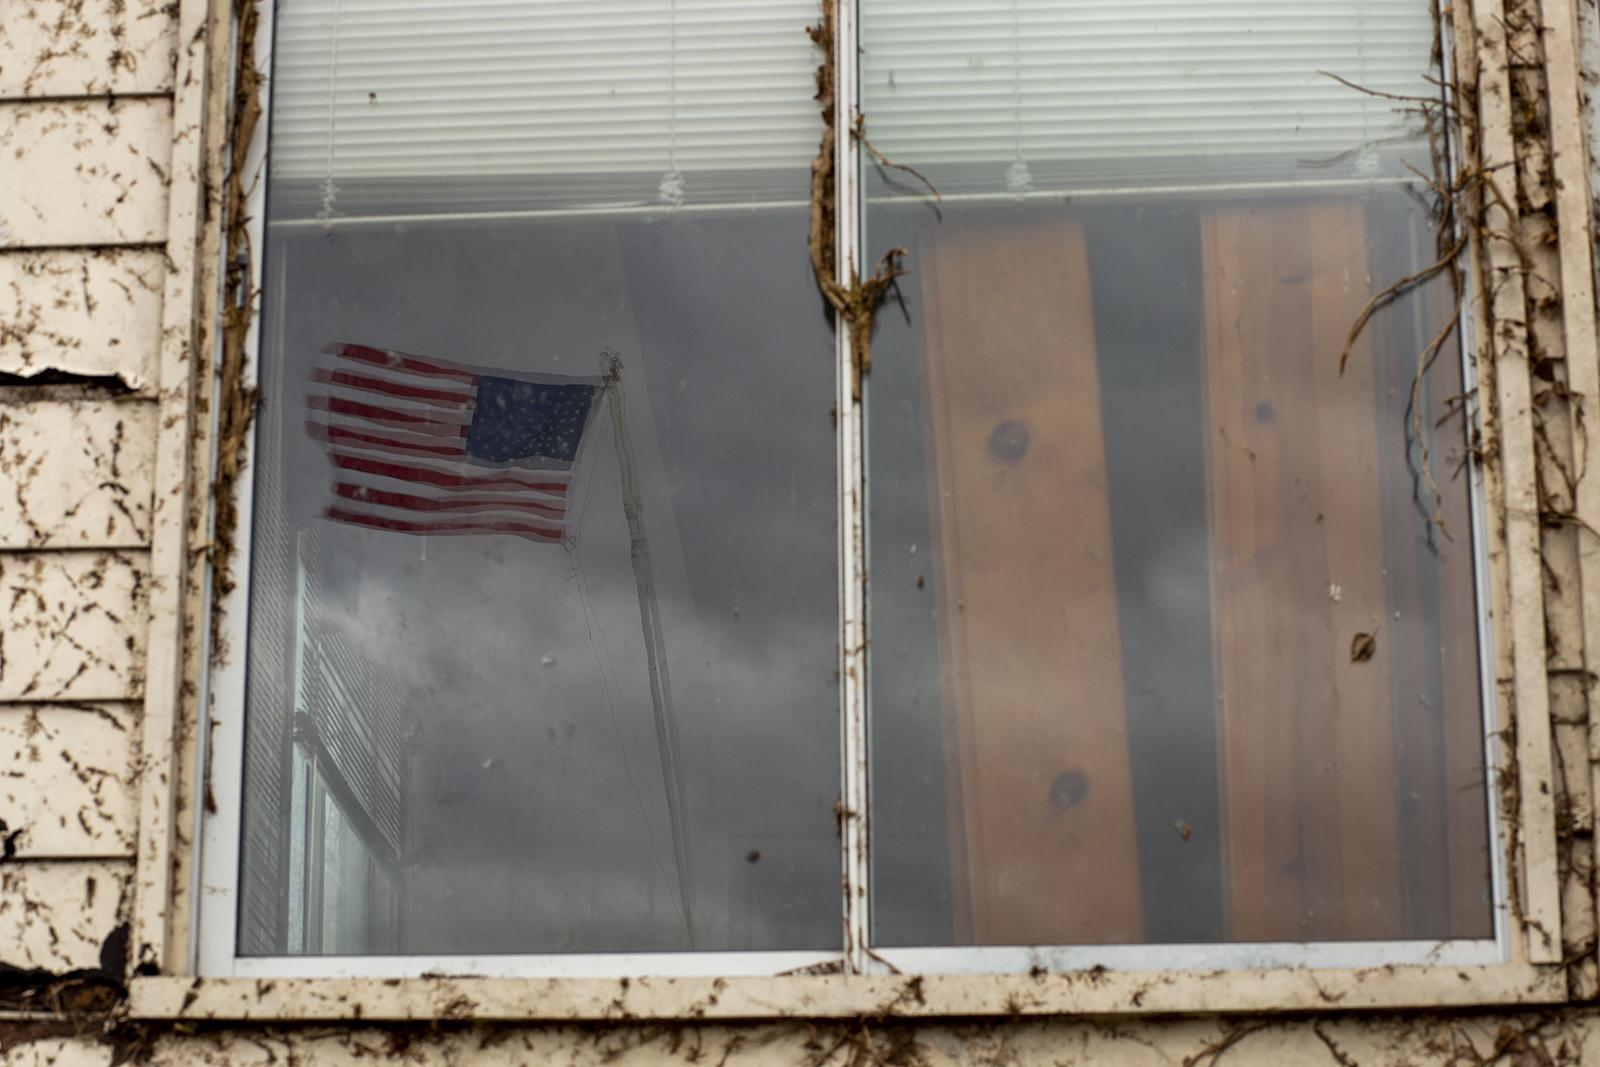 HARPERS FERRY, WV - FEBRUARY 7: The American flag reflected in a window of some of the ruins of the Hilltop House Hotel complex in Harpers Ferry, WV. Some kind of hotel has been atop the bluff overlooking the town since 1888. How to redevelop the current hotel and surrounding land has created deep divisions among the residents of Harpers Ferry. (Photo by Robb Hill for The Washington Post)